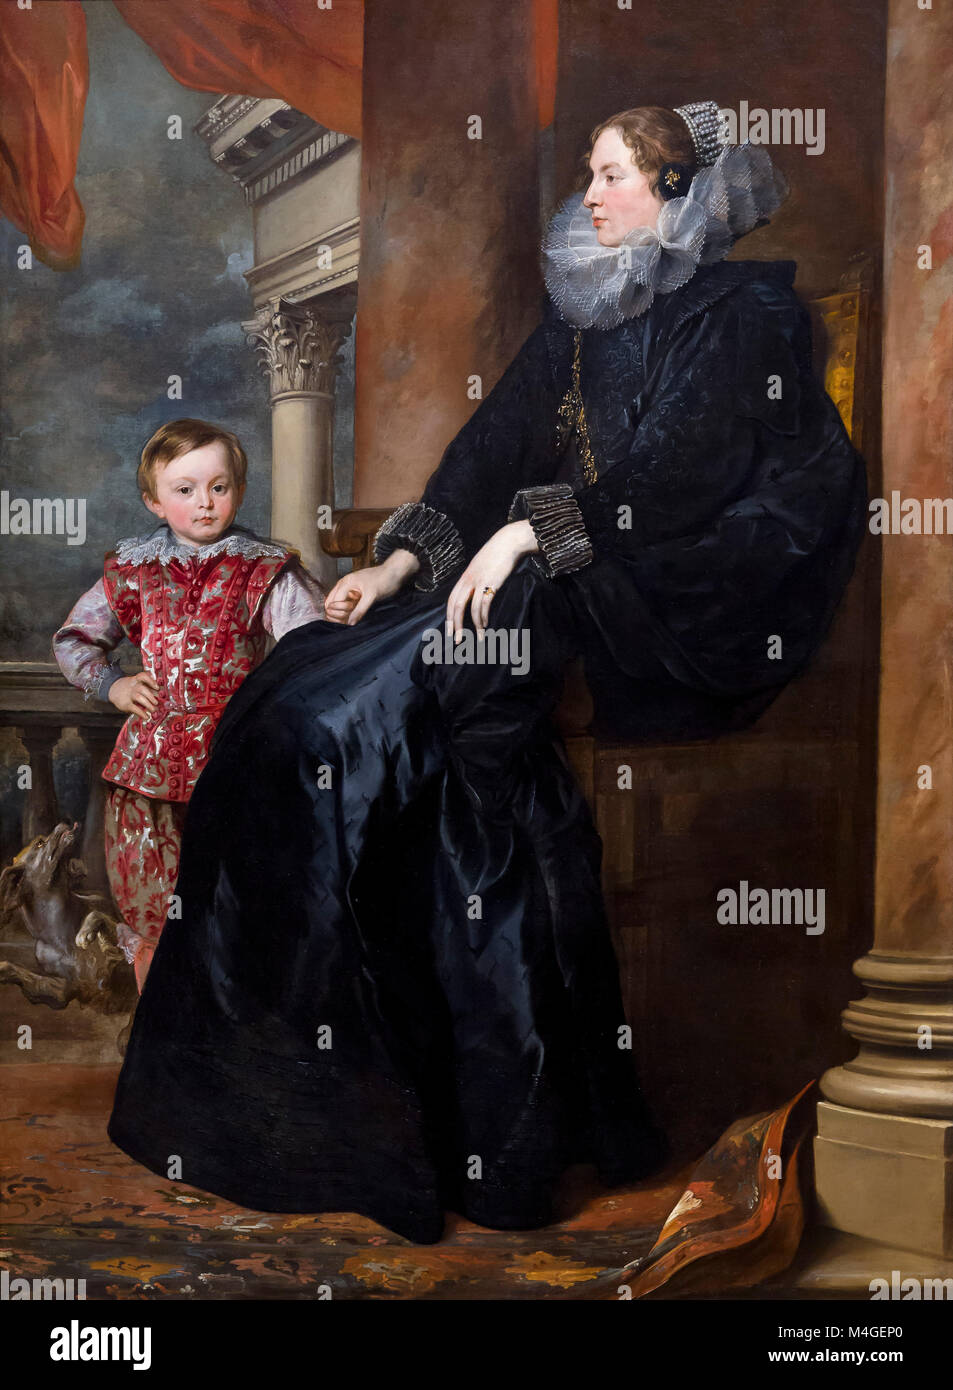 A Genoese Noblewoman and Her Son, Sir Anthony van Dyck, circa 1626, National Gallery of Art, Washington DC, USA, - Stock Image